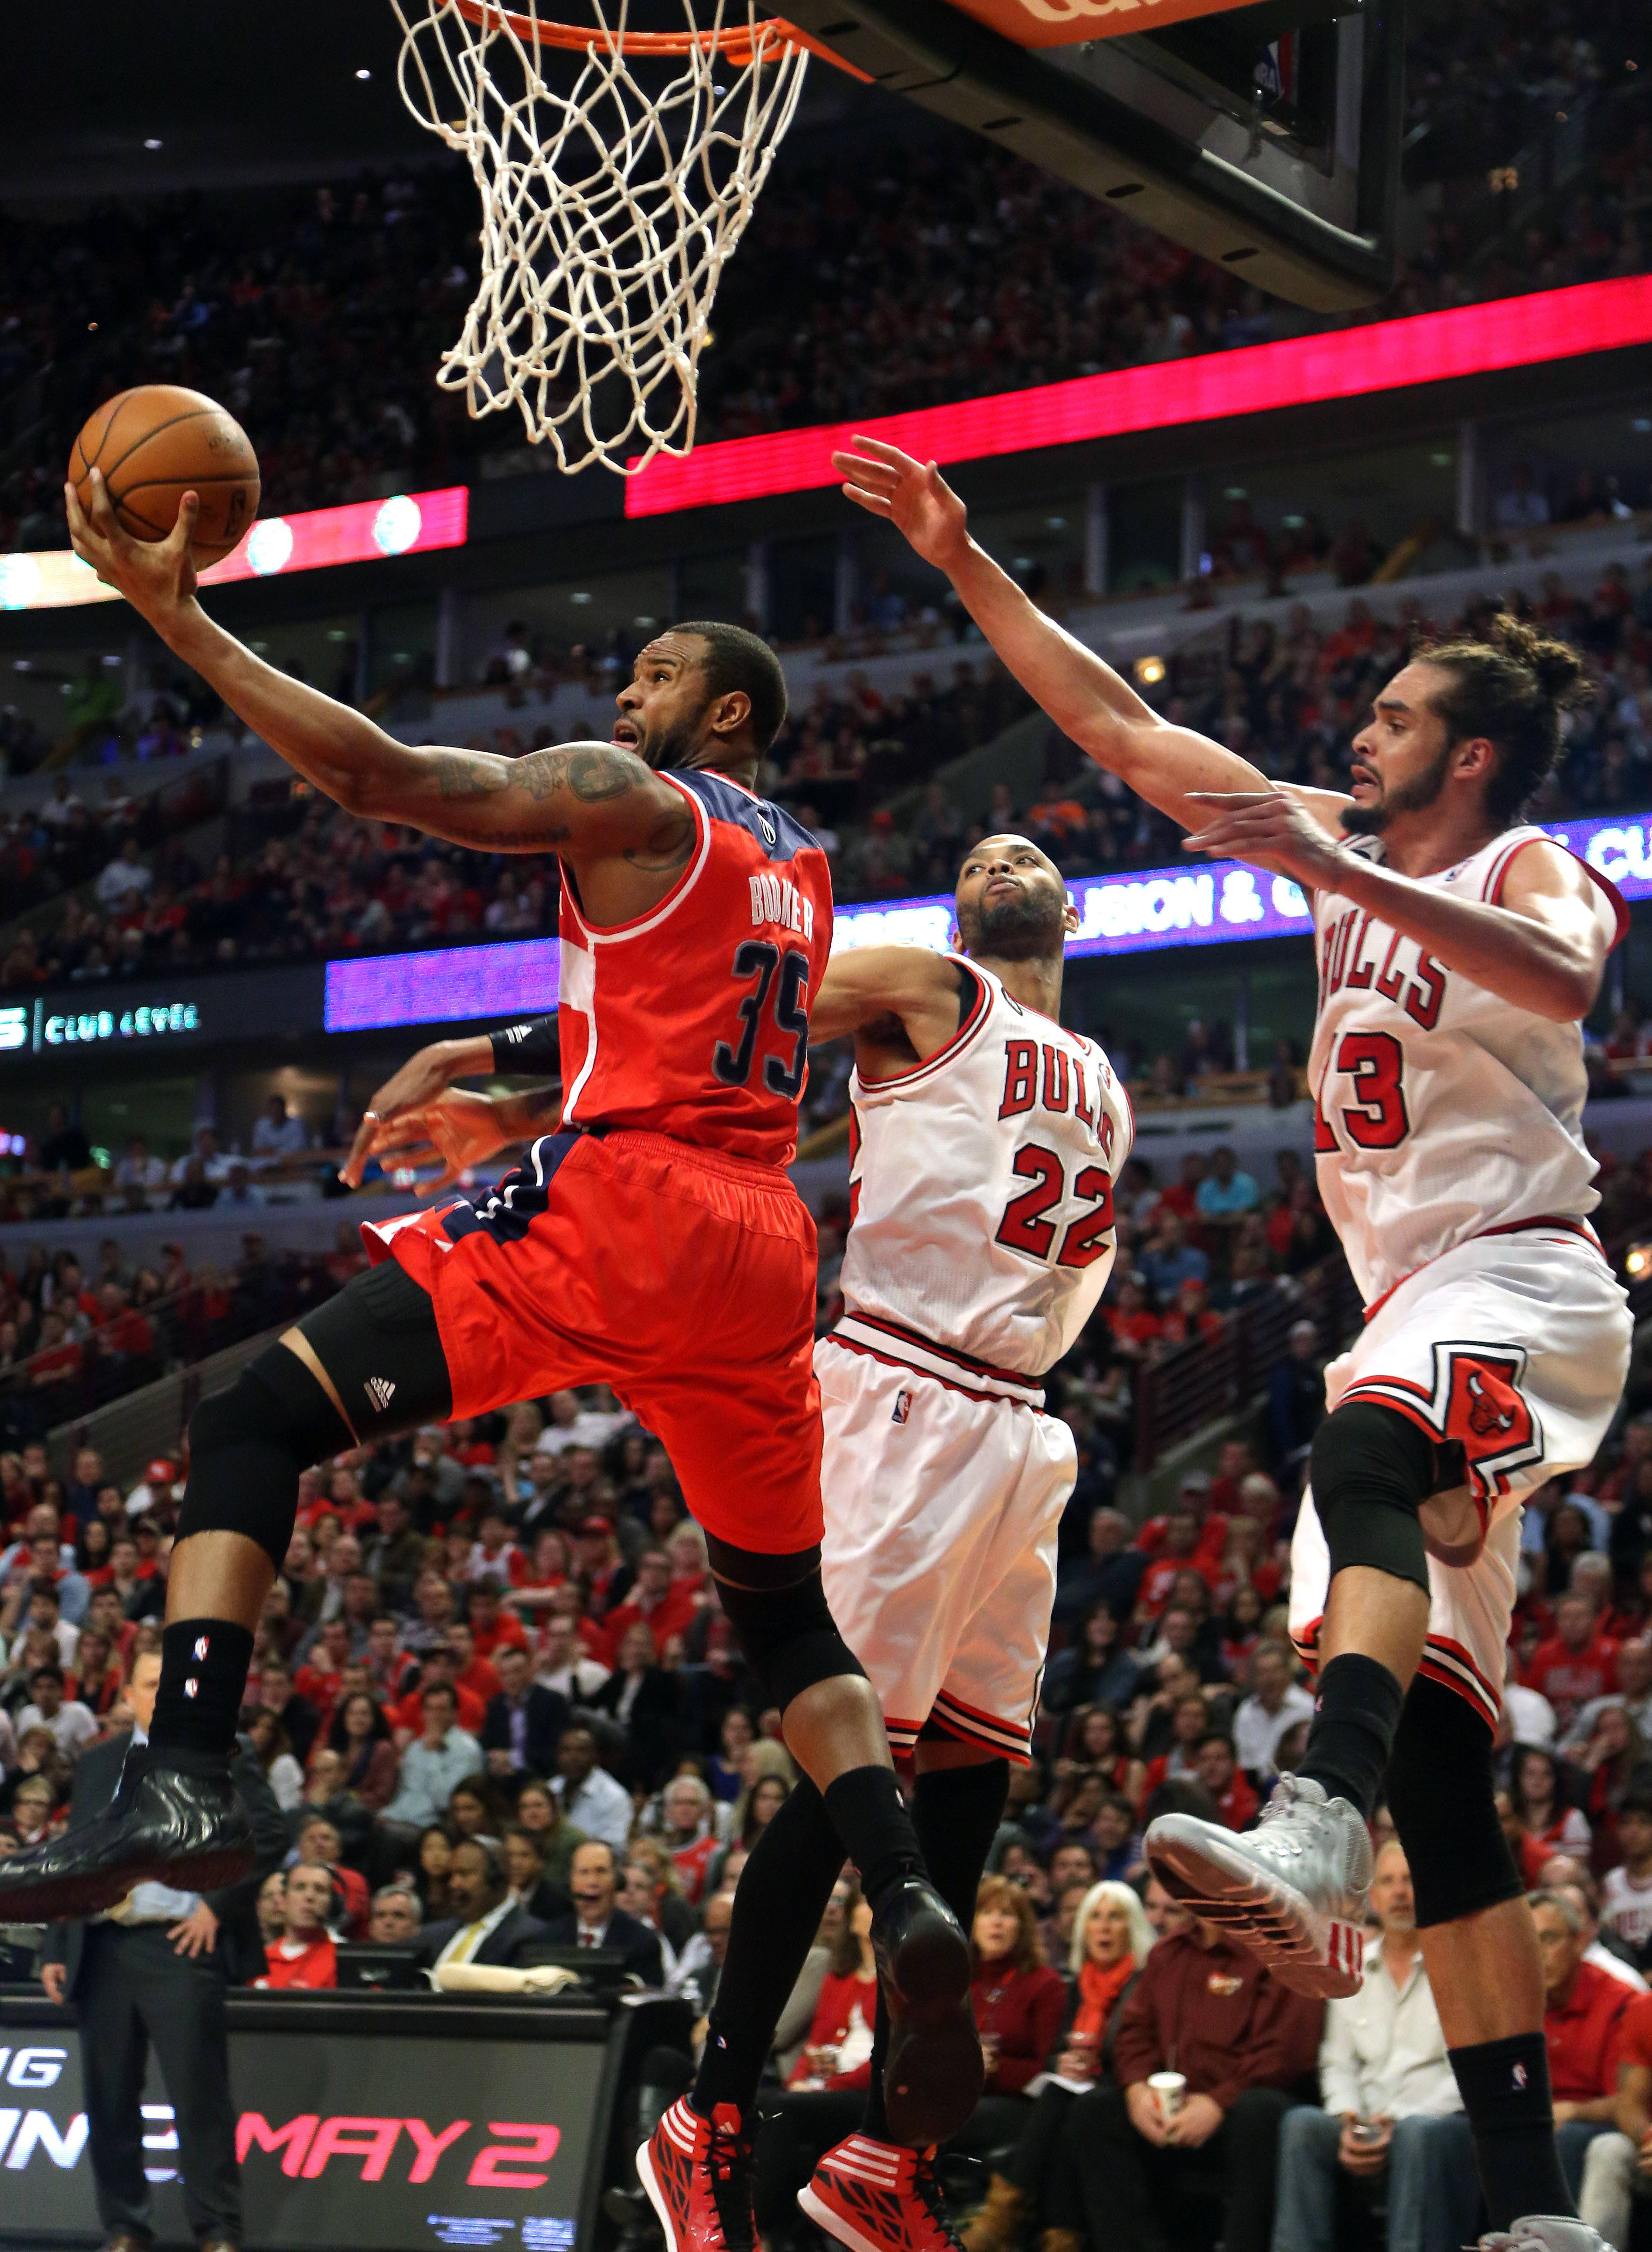 Washington Wizards forward Trevor Booker drives on Chicago Bulls forward Taj Gibson and Chicago Bulls center Joakim Noah.